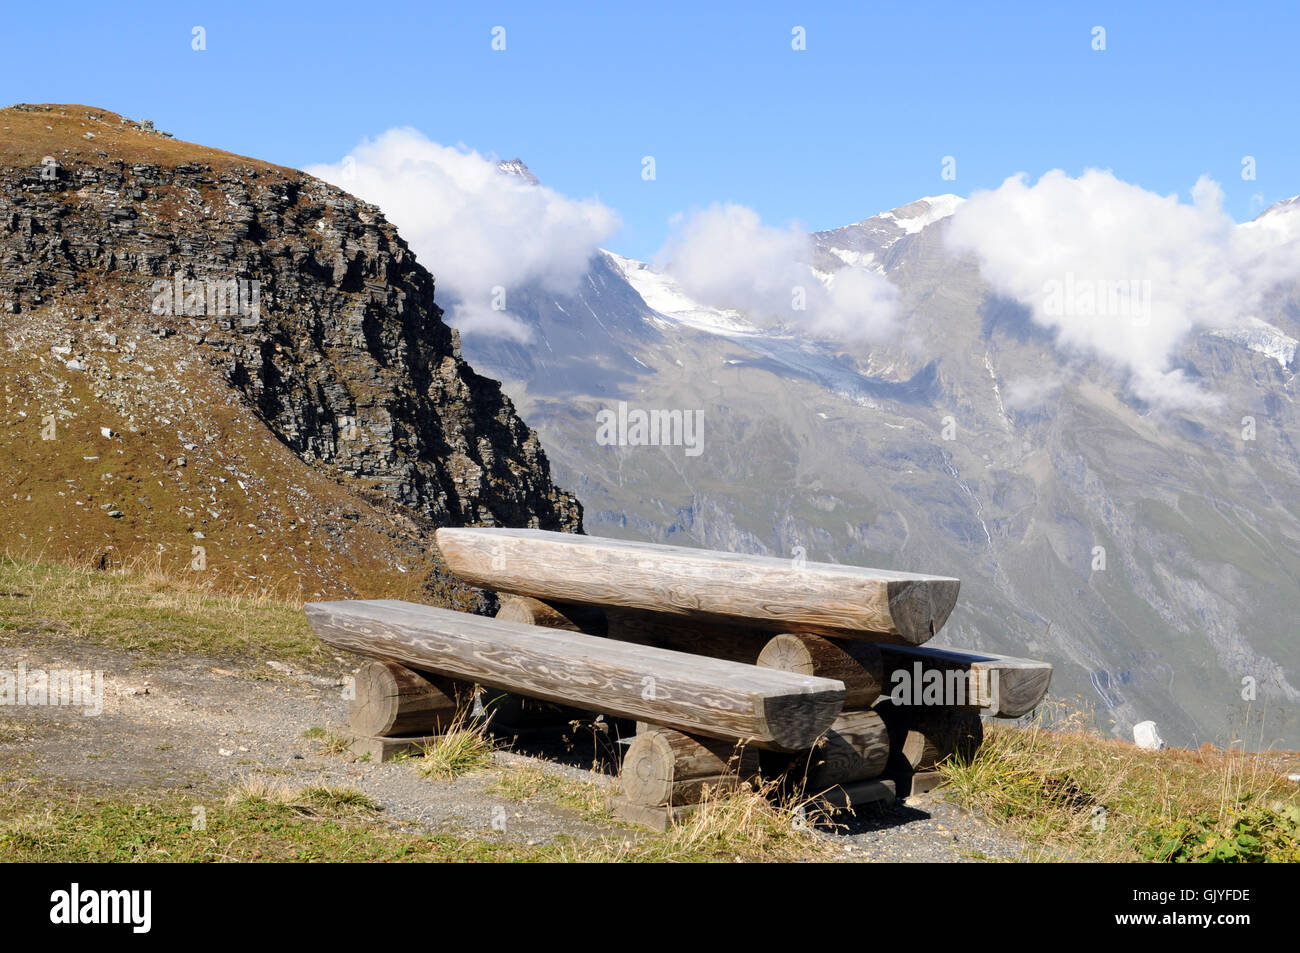 resting place seat bench - Stock Image